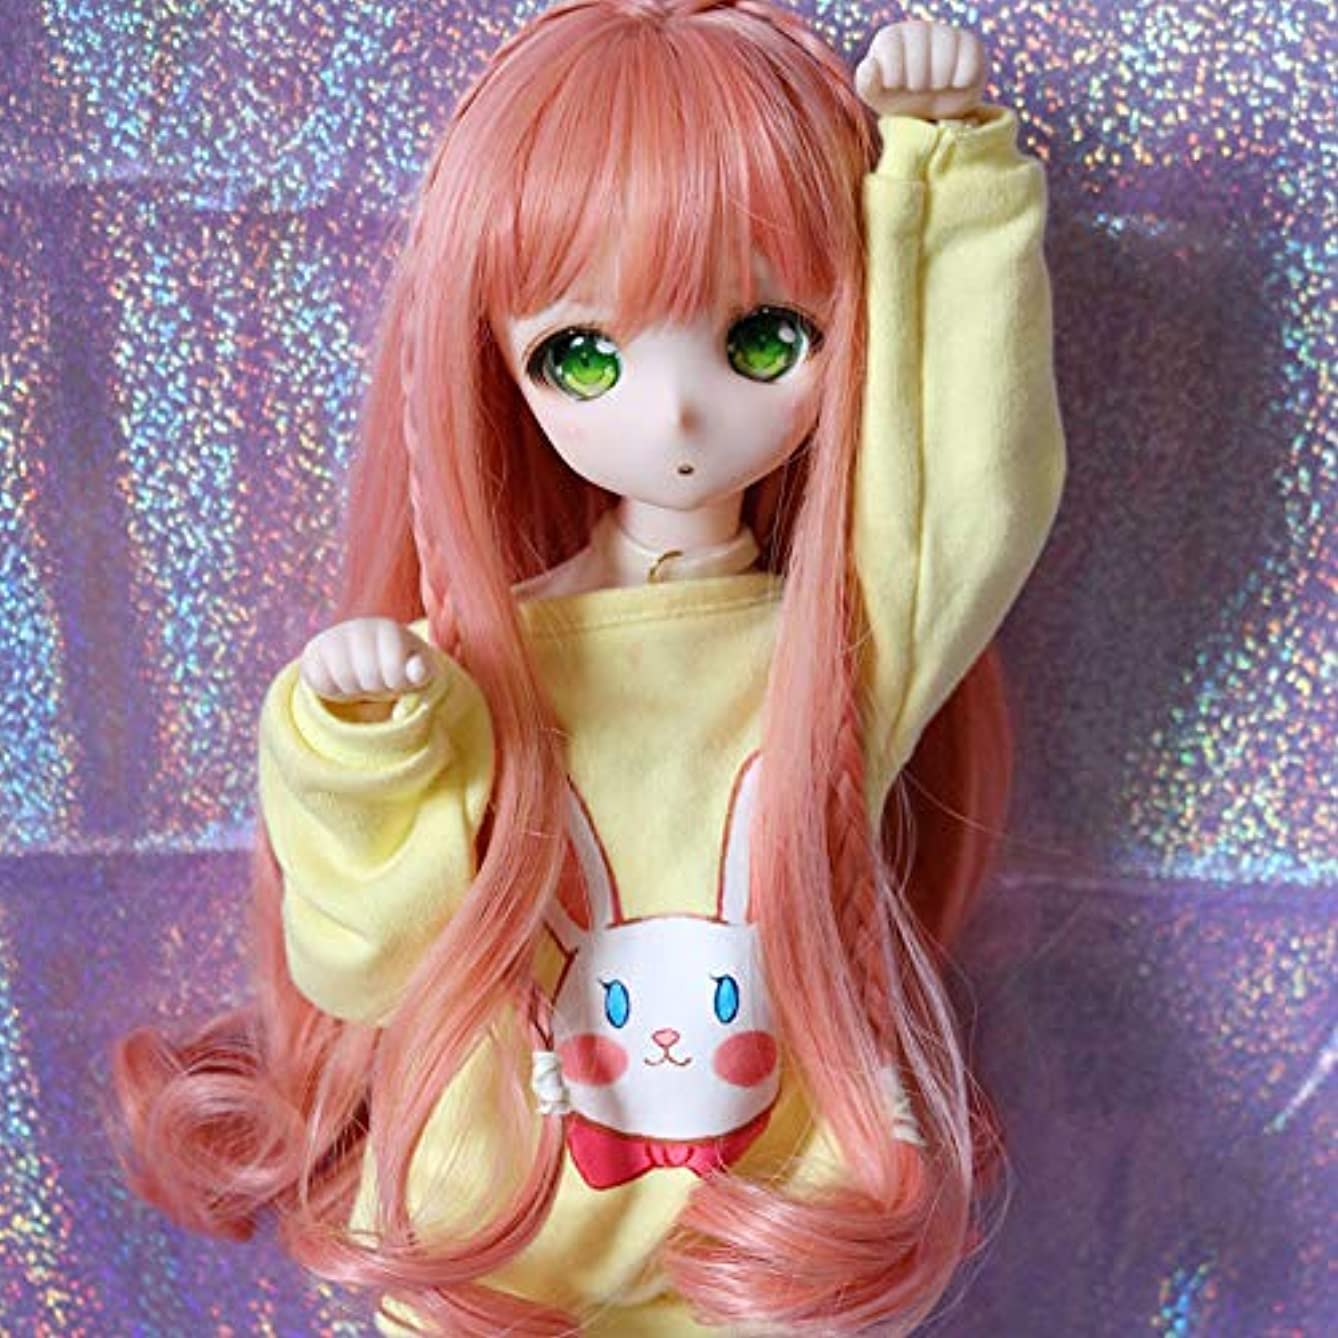 1/3 9-10 inch BJD Doll Wig High Temperature Long Loose Wavy Orange Pink Synthetic Fiber Hair Wig BJD Doll Wigs for 1/3 1/4 1/6 BJD SD Doll (T2335&T1344&T1641)